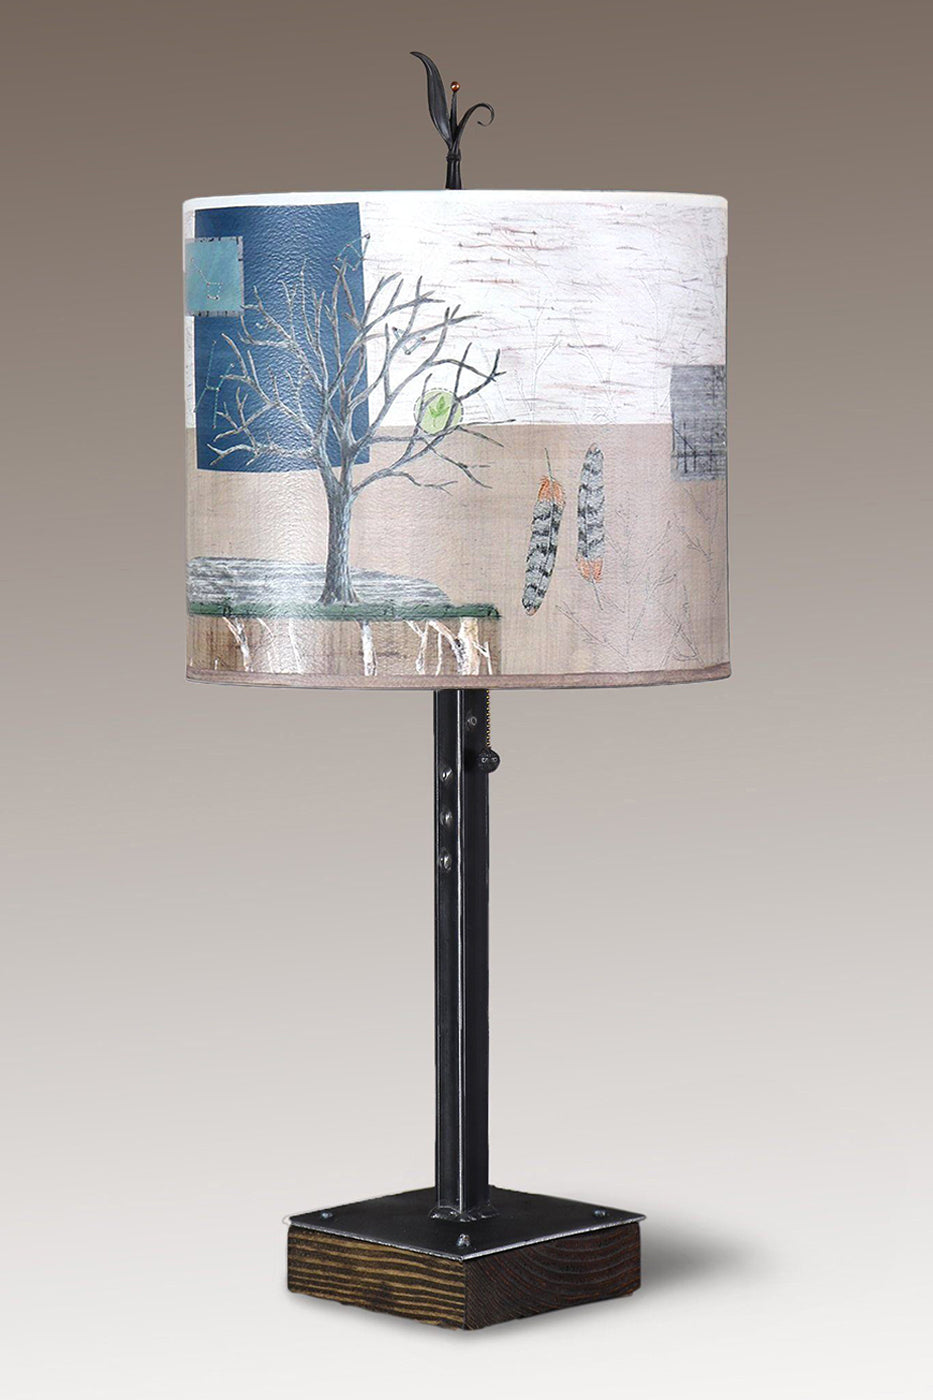 Steel Table Lamp on Wood with Large Oval Shade in Wander in Drift